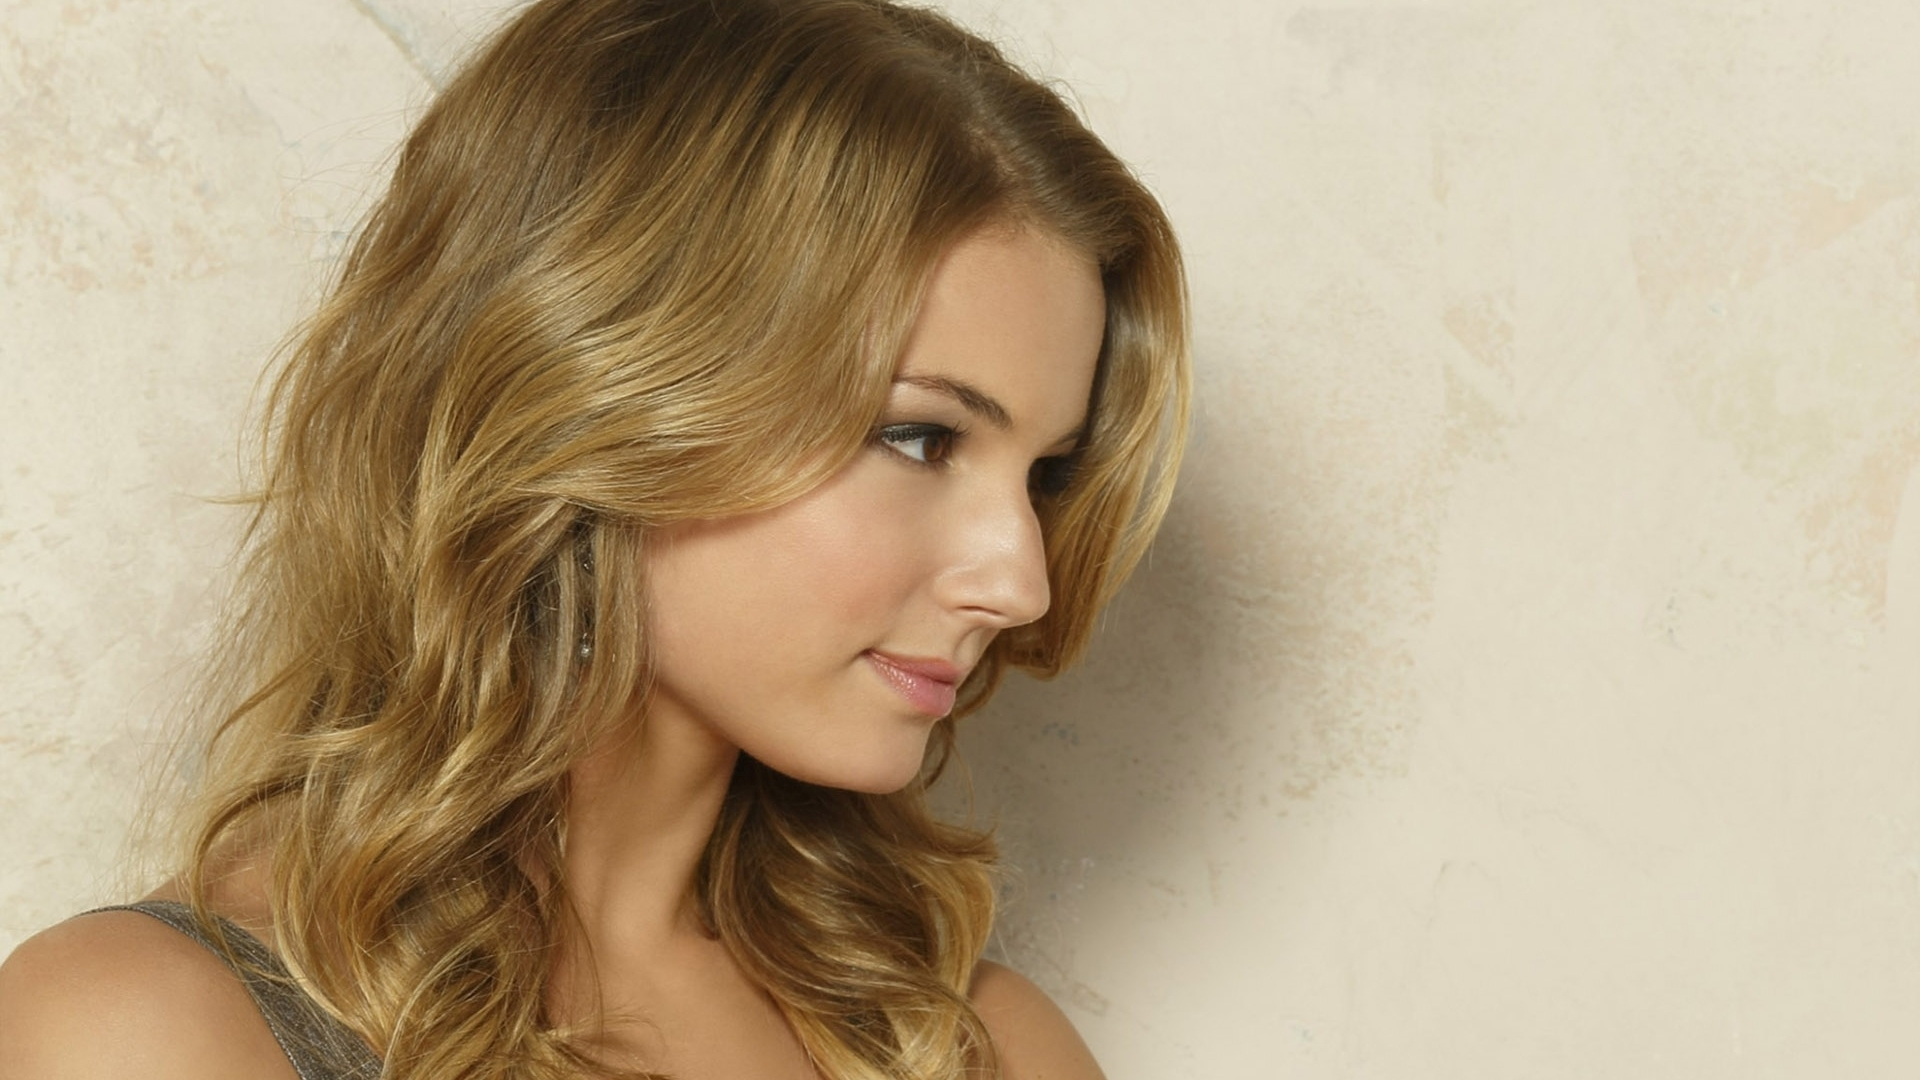 emily vancamp desktop wallpaper hd 50315